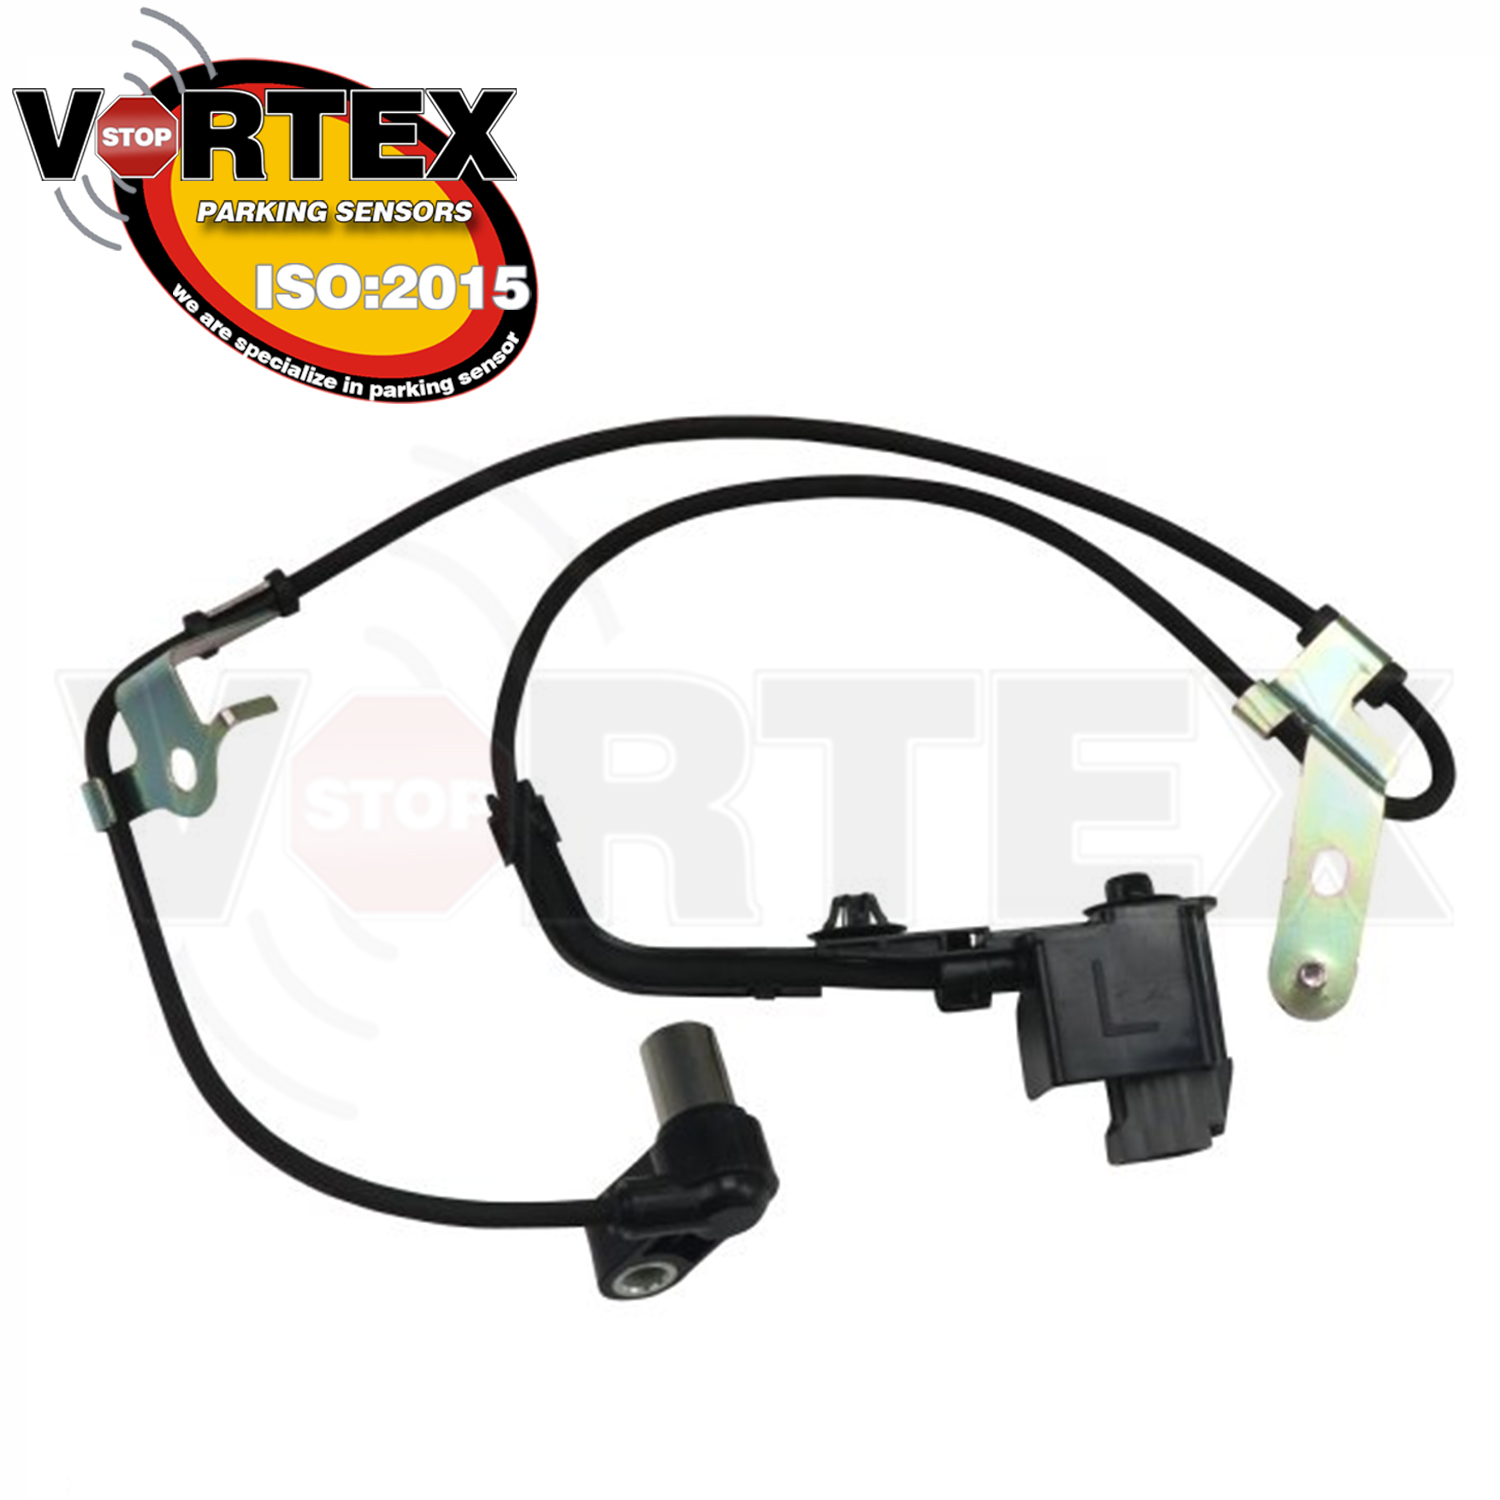 ABS speed sensor for X-Type 02-08 Rear Right Side